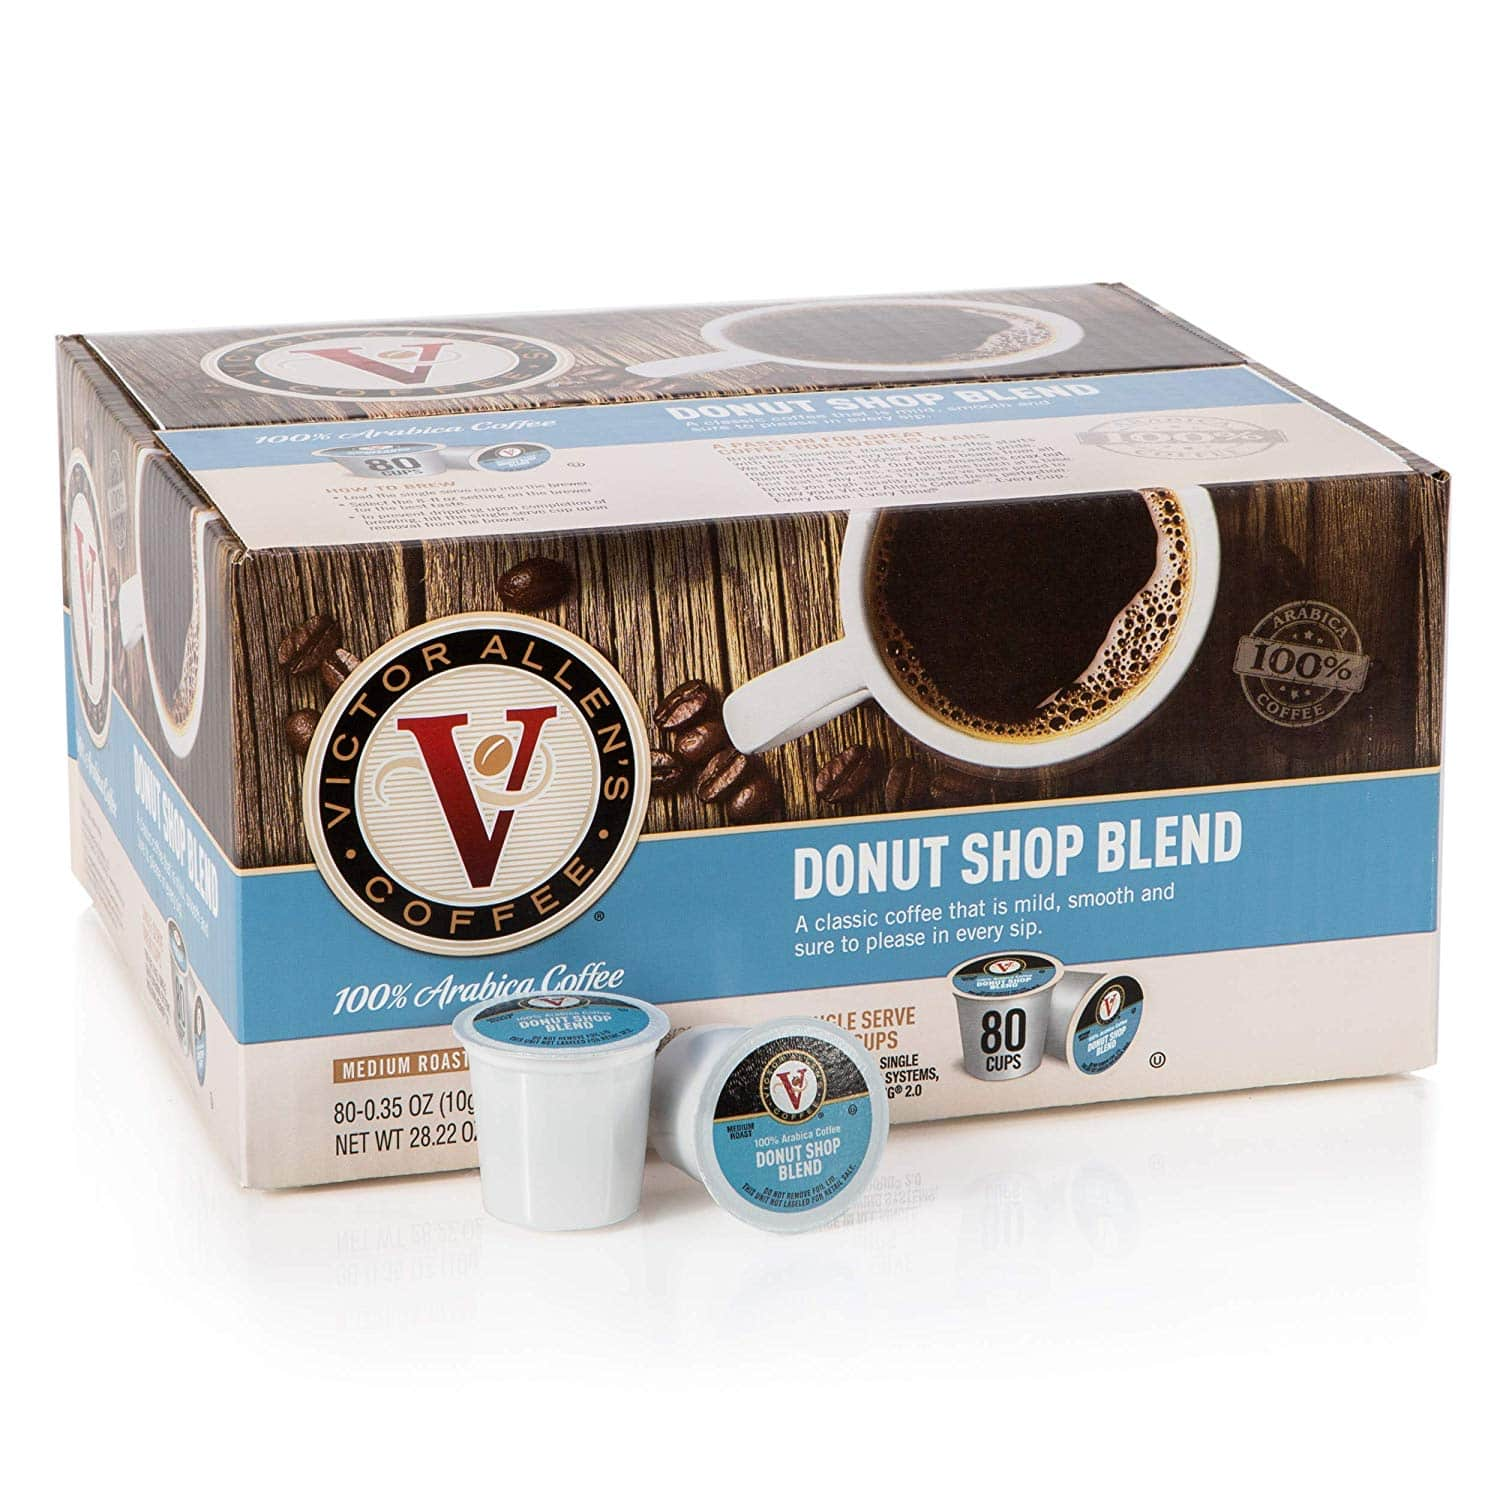 Donut Shop Blend, Victor Allen's Coffee Medium Roast Single Serve Coffee K-Cup Pods, 80 Count, Amazon w/ S&S $18.74